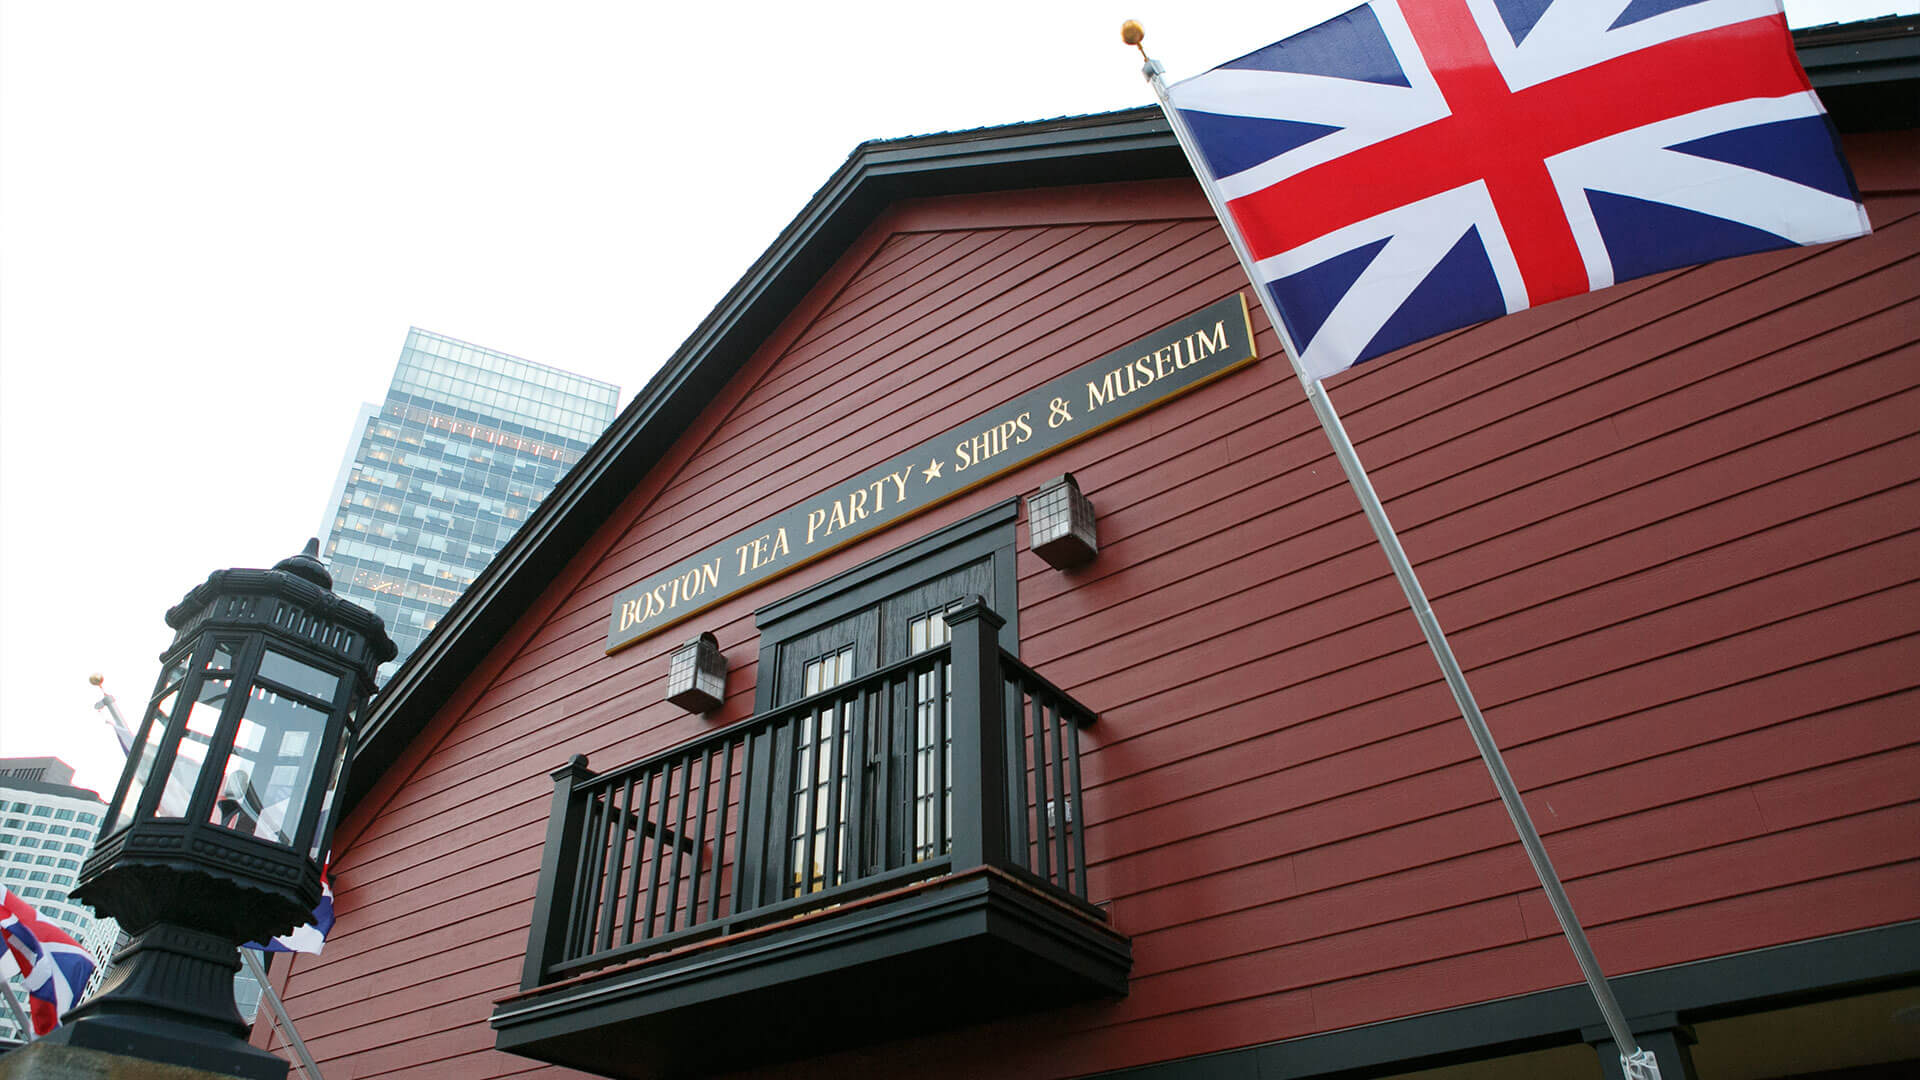 Boston Tea Party Ships Museum balcony with flag